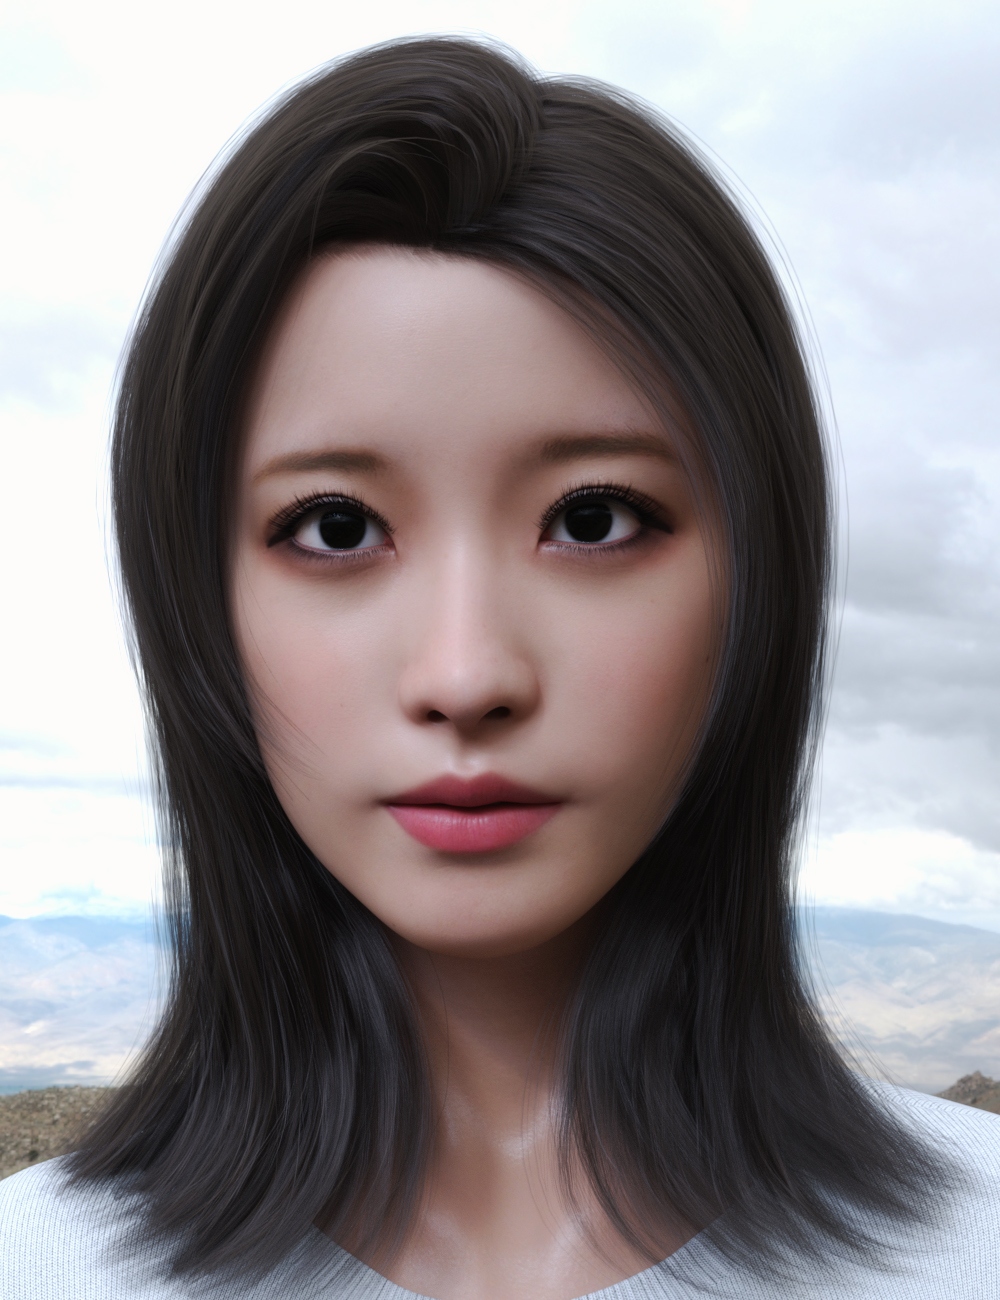 Yami Character and Hair for Genesis 8.1 Female by: GoannaSprite, 3D Models by Daz 3D